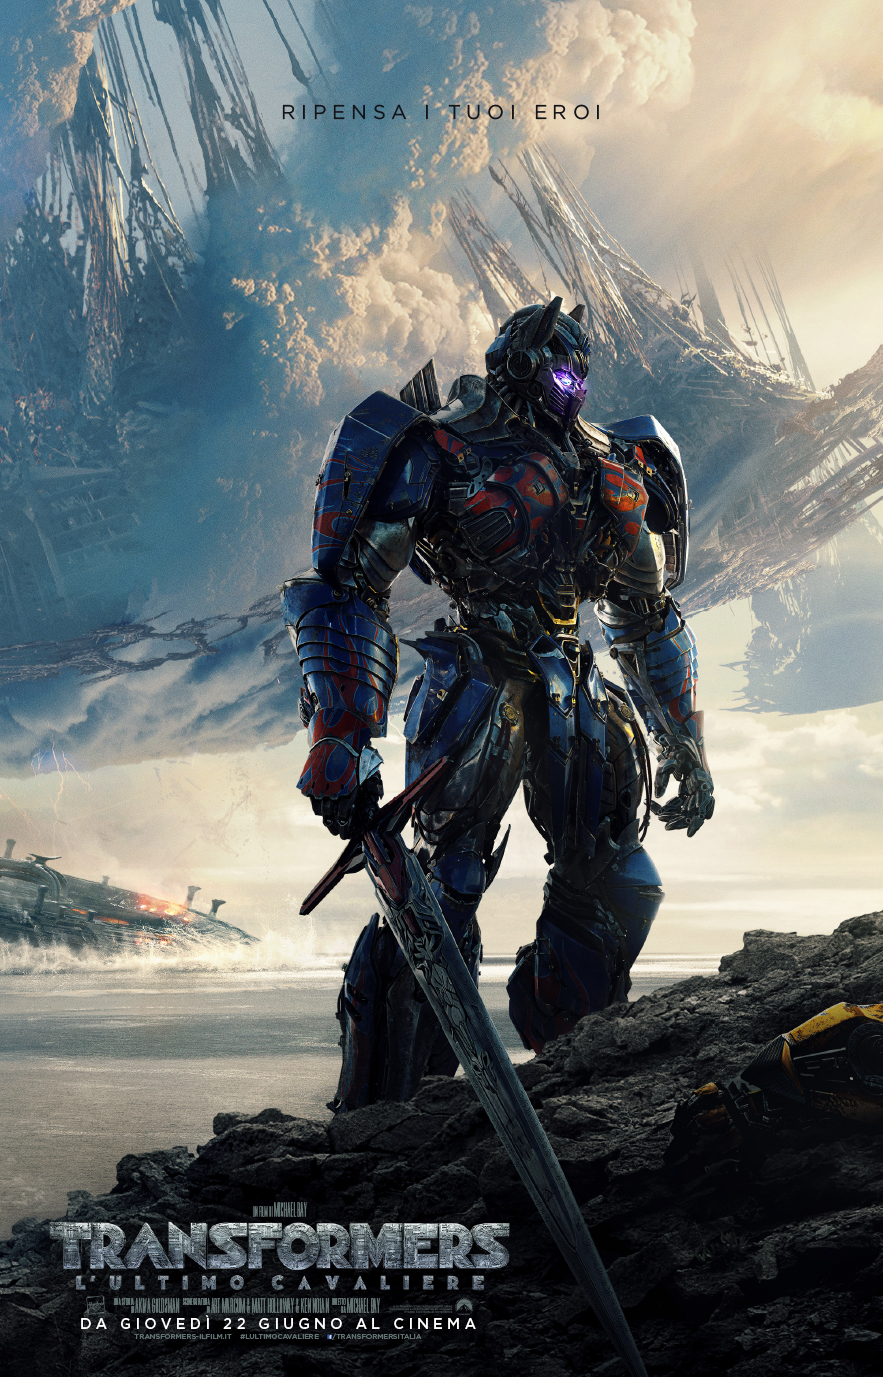 Transformers – L'ultimo cavaliere: dal film di Michael Bay ecco nuovo trailer italiano